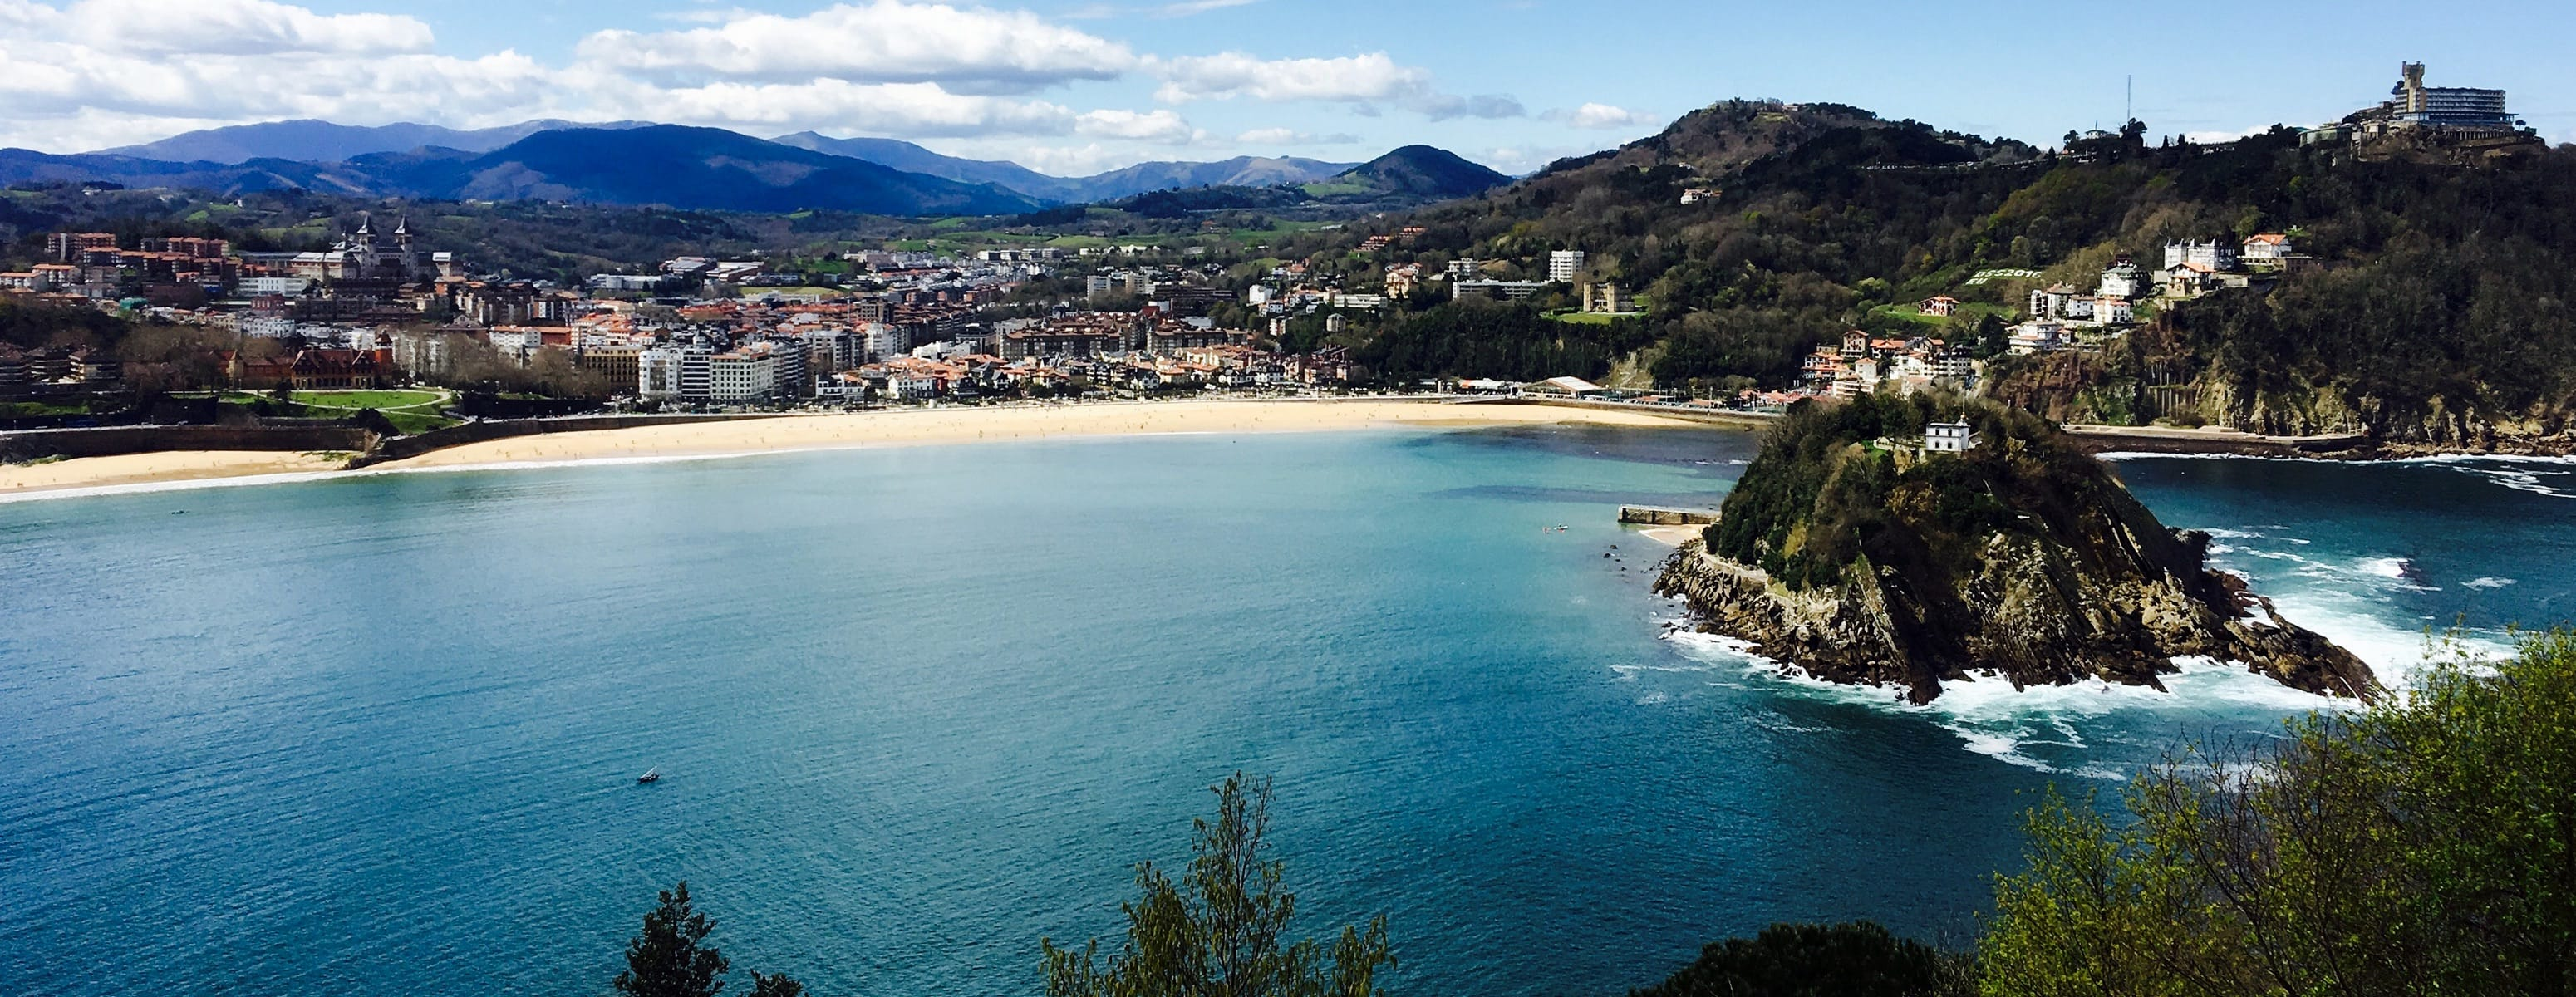 Orio 2018 (with Photos): Top 20 Places to Stay in Orio - Vacation ...